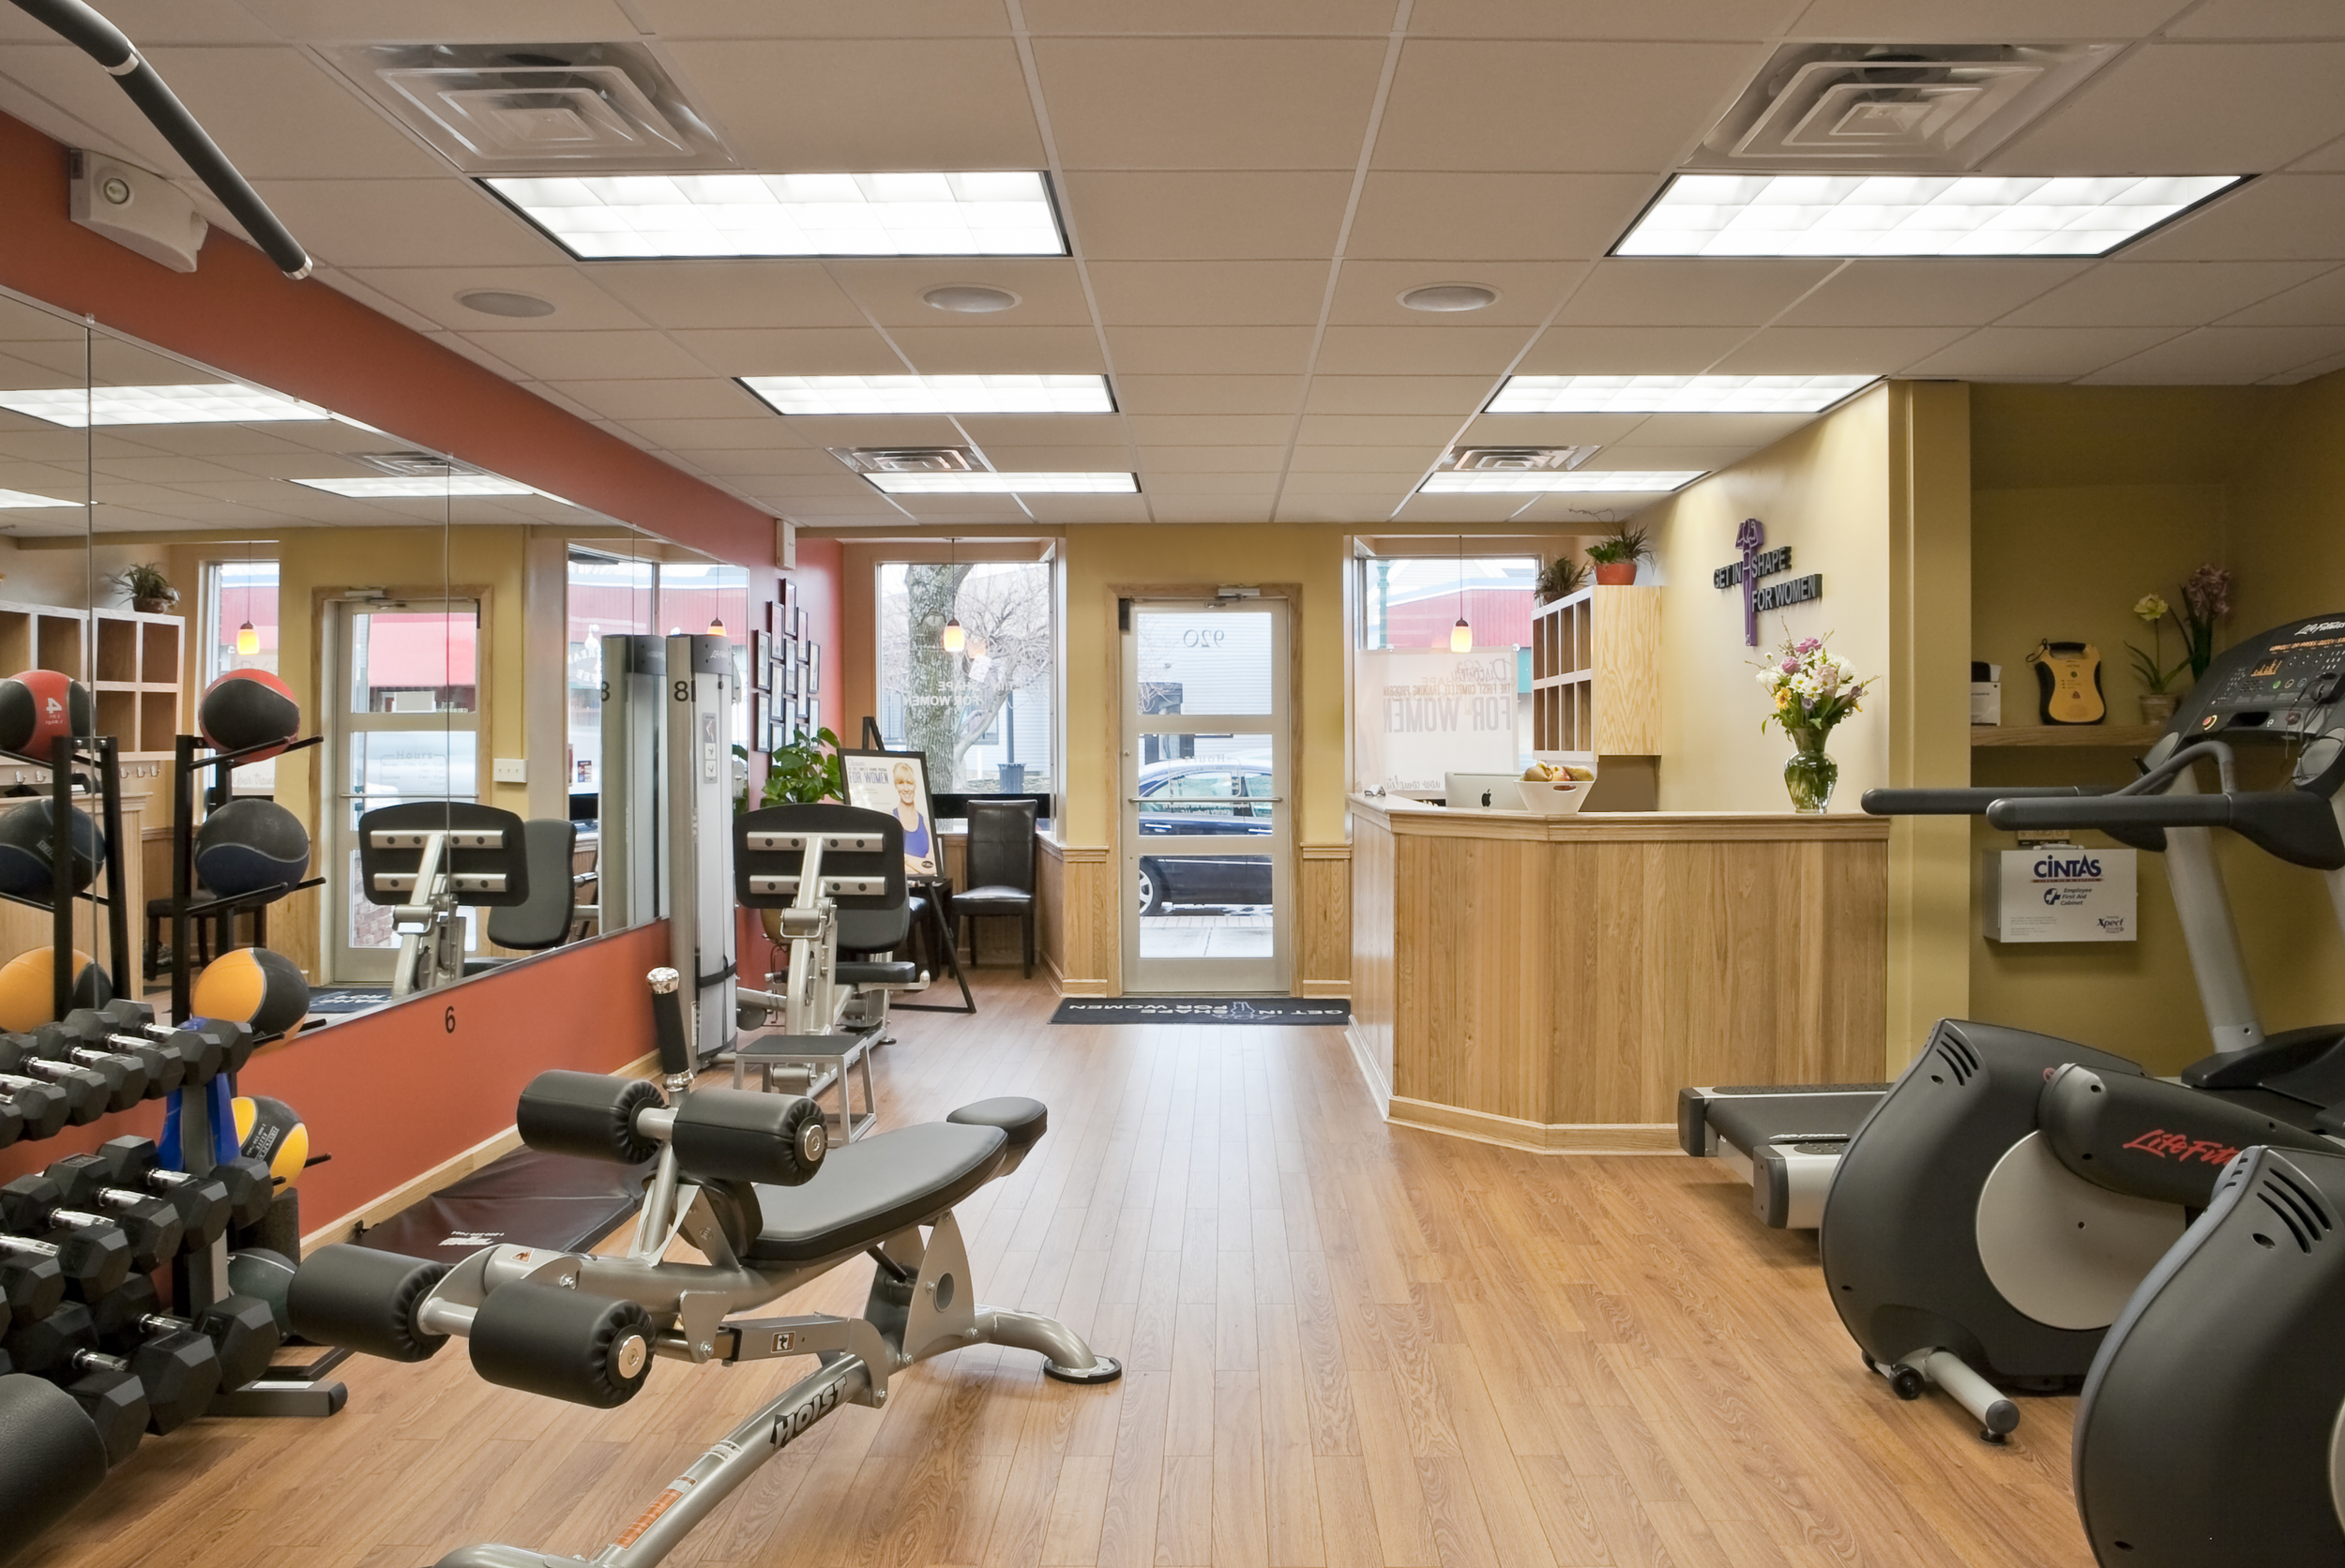 A peek inside a Get In Shape For Women studio. The national fitness franchise offers tailored personal training and nutrition consulting to women of all ages.